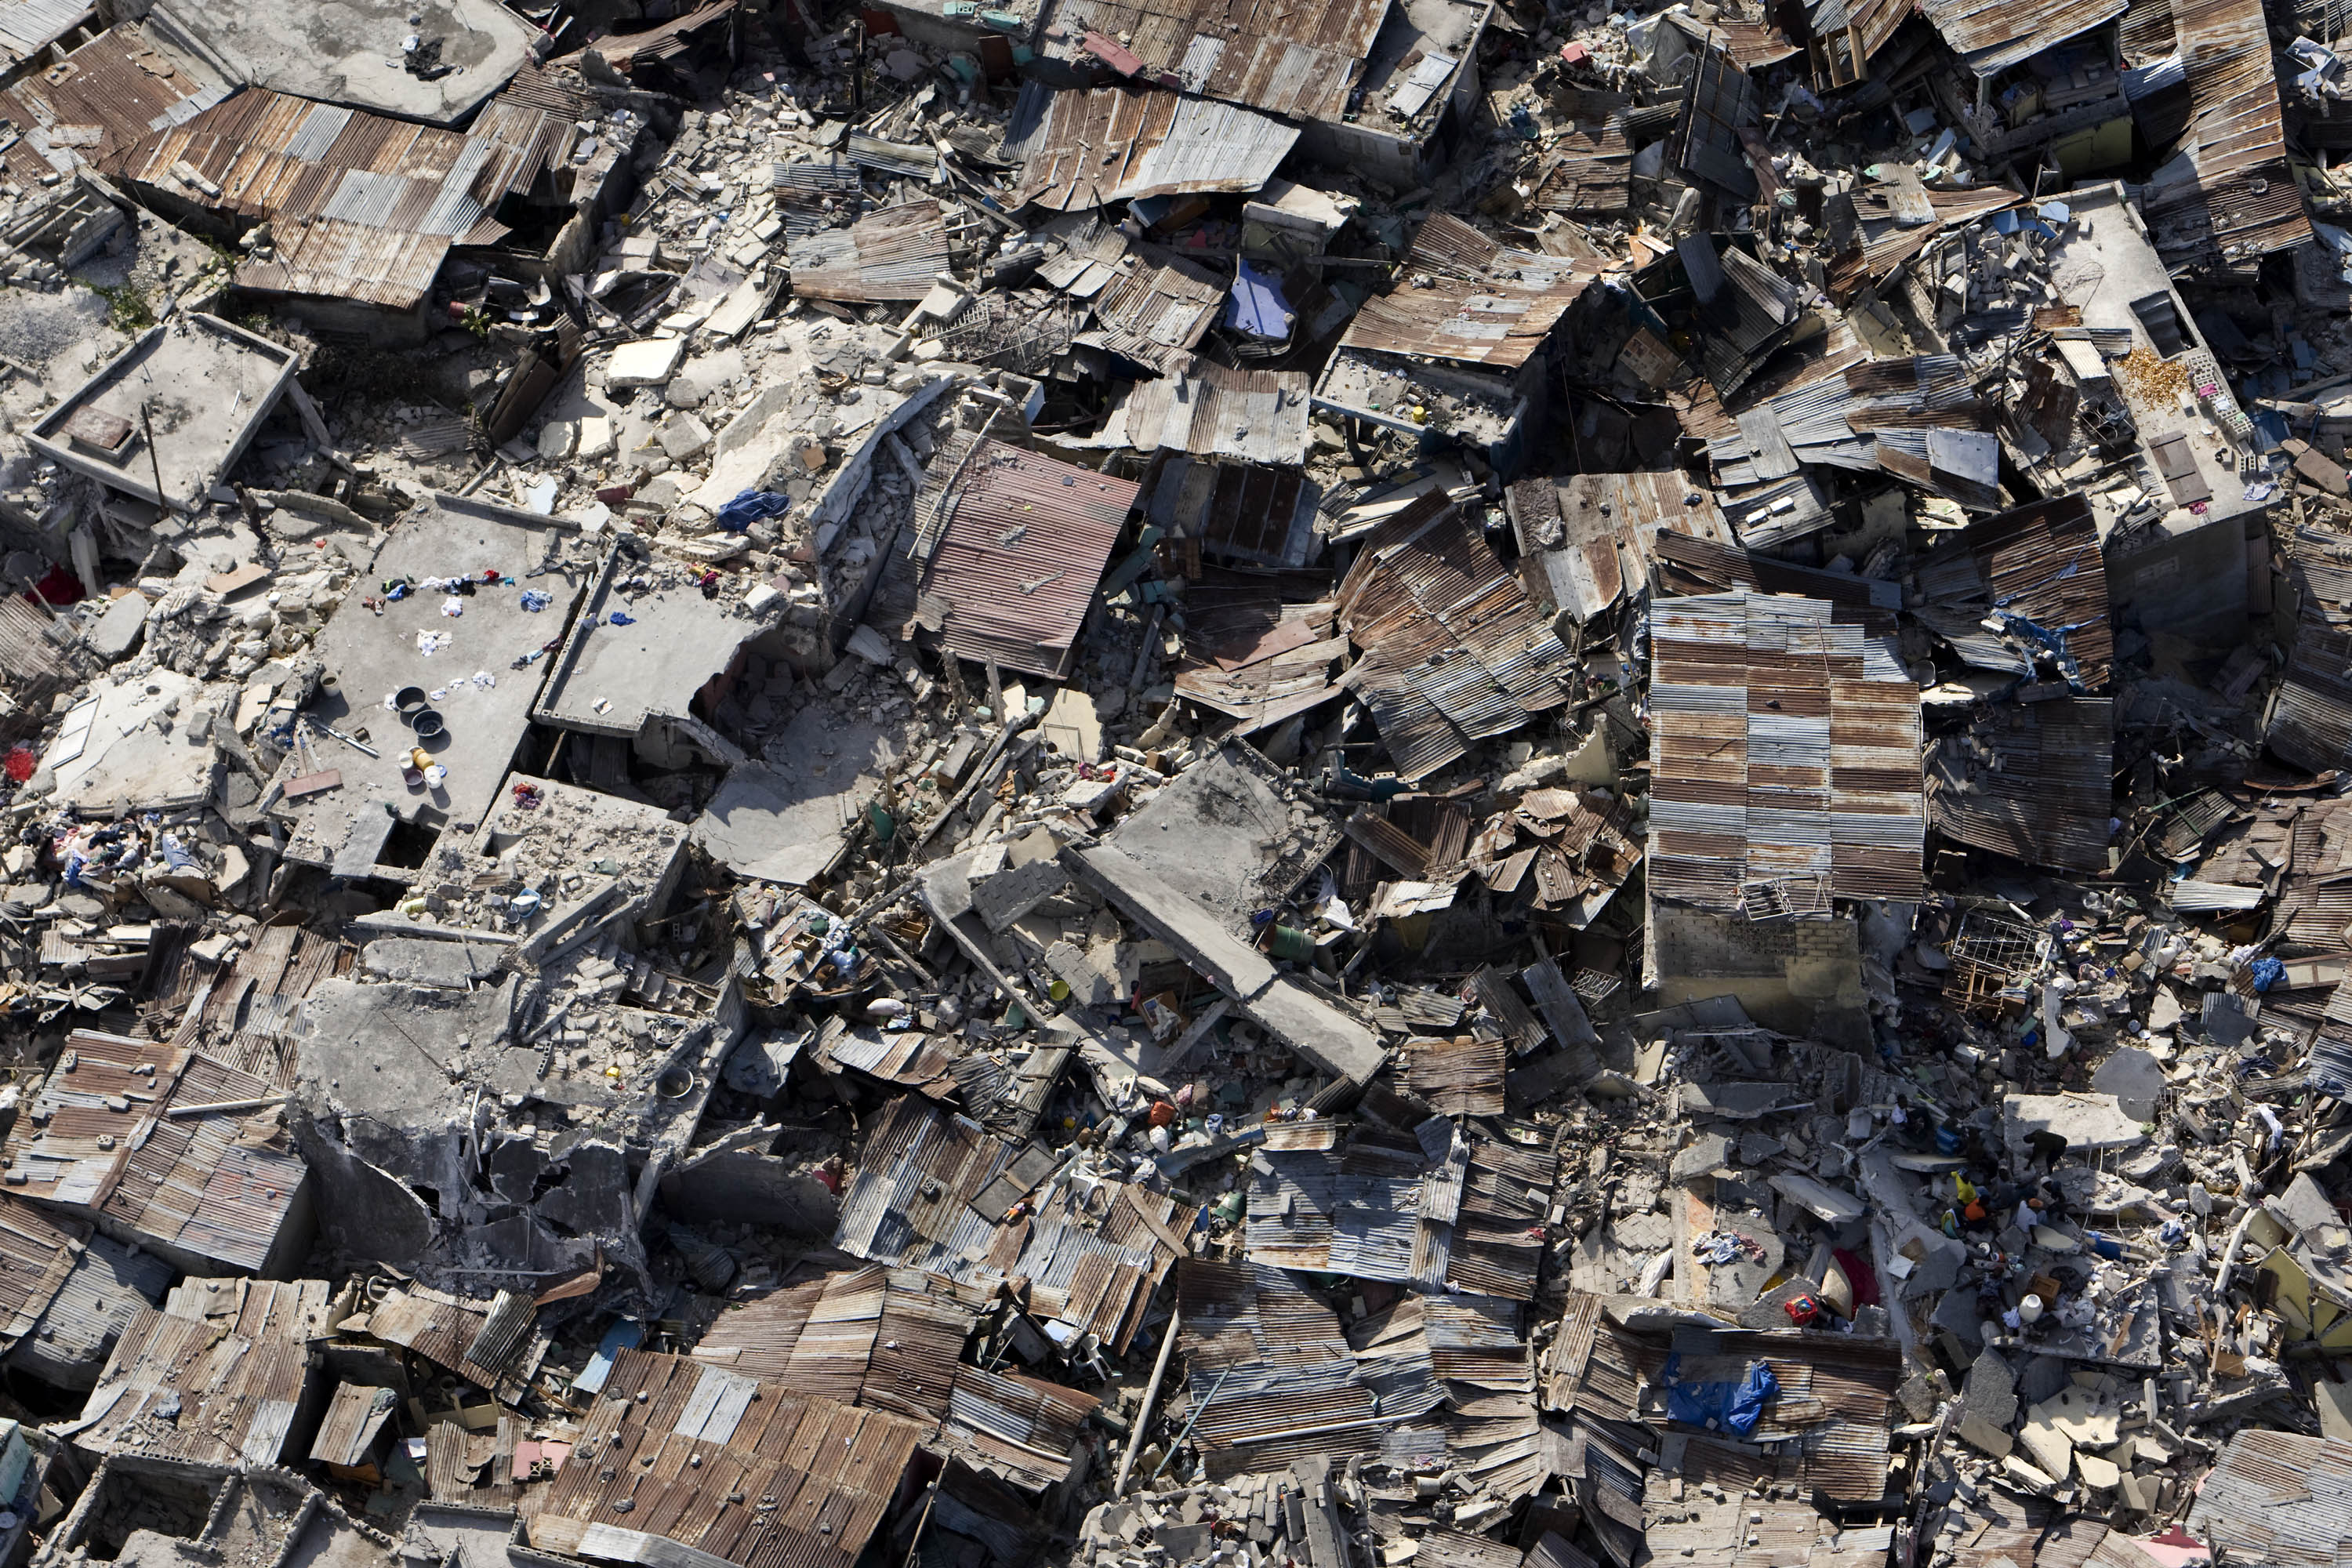 15 Fascinating Facts About Earthquakes